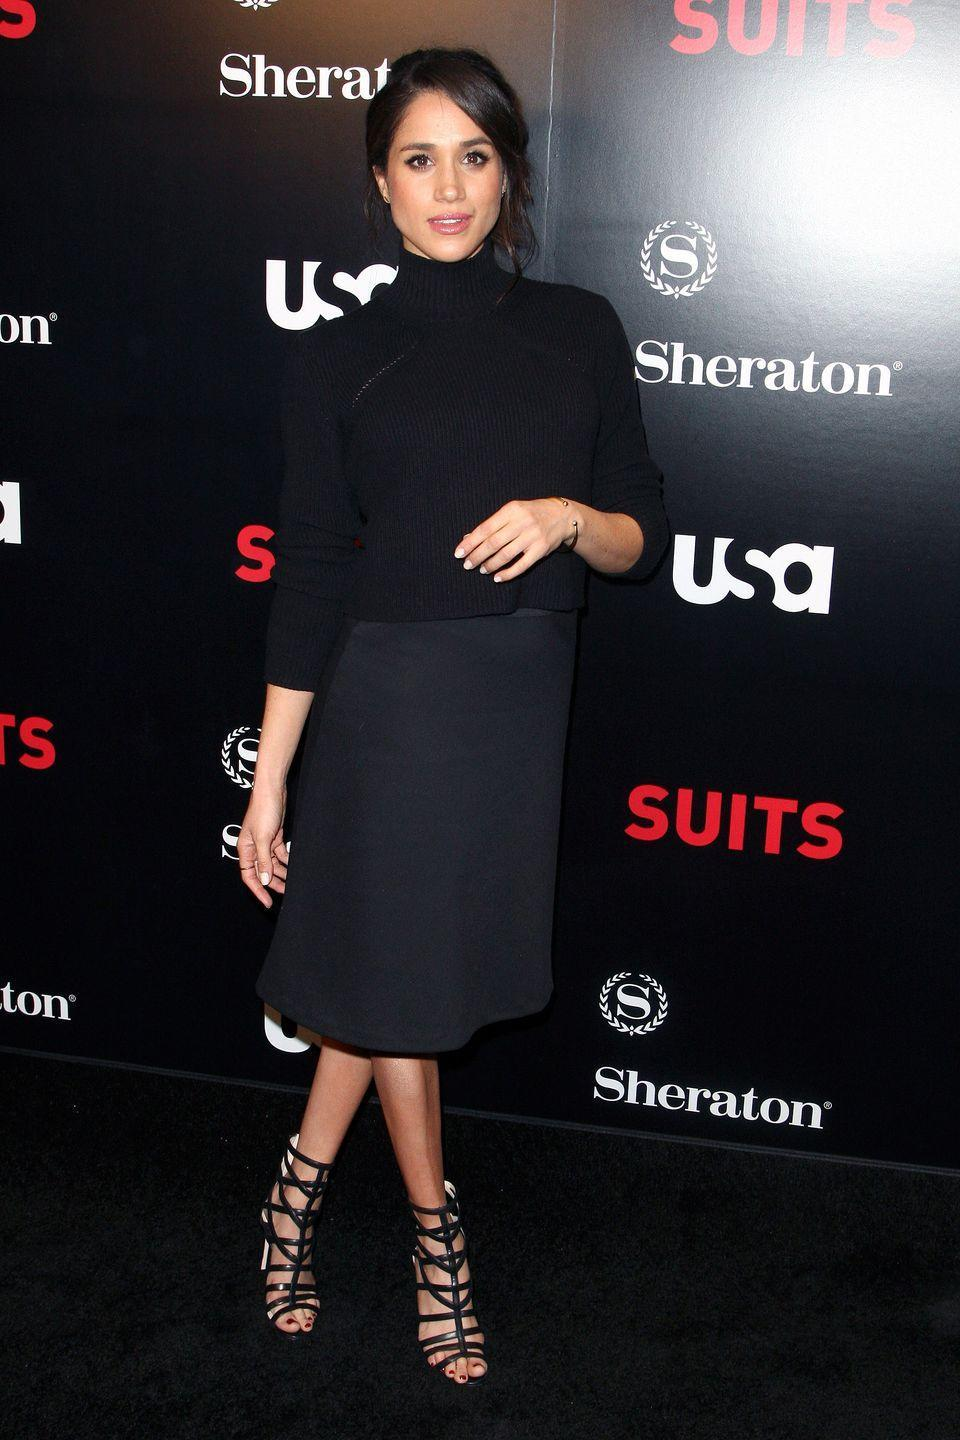 <p> One of the first things Meghan did after announcing her engagement was shut down her lifestyle blog, <em>The Tig</em>. Members of the royal family are not only prohibited from expressing political opinions, but they also aren't allowed to endorse or receive any personal products—so Meghan's archived posts describing her favorite skincare, snacks, and more had to go.</p>